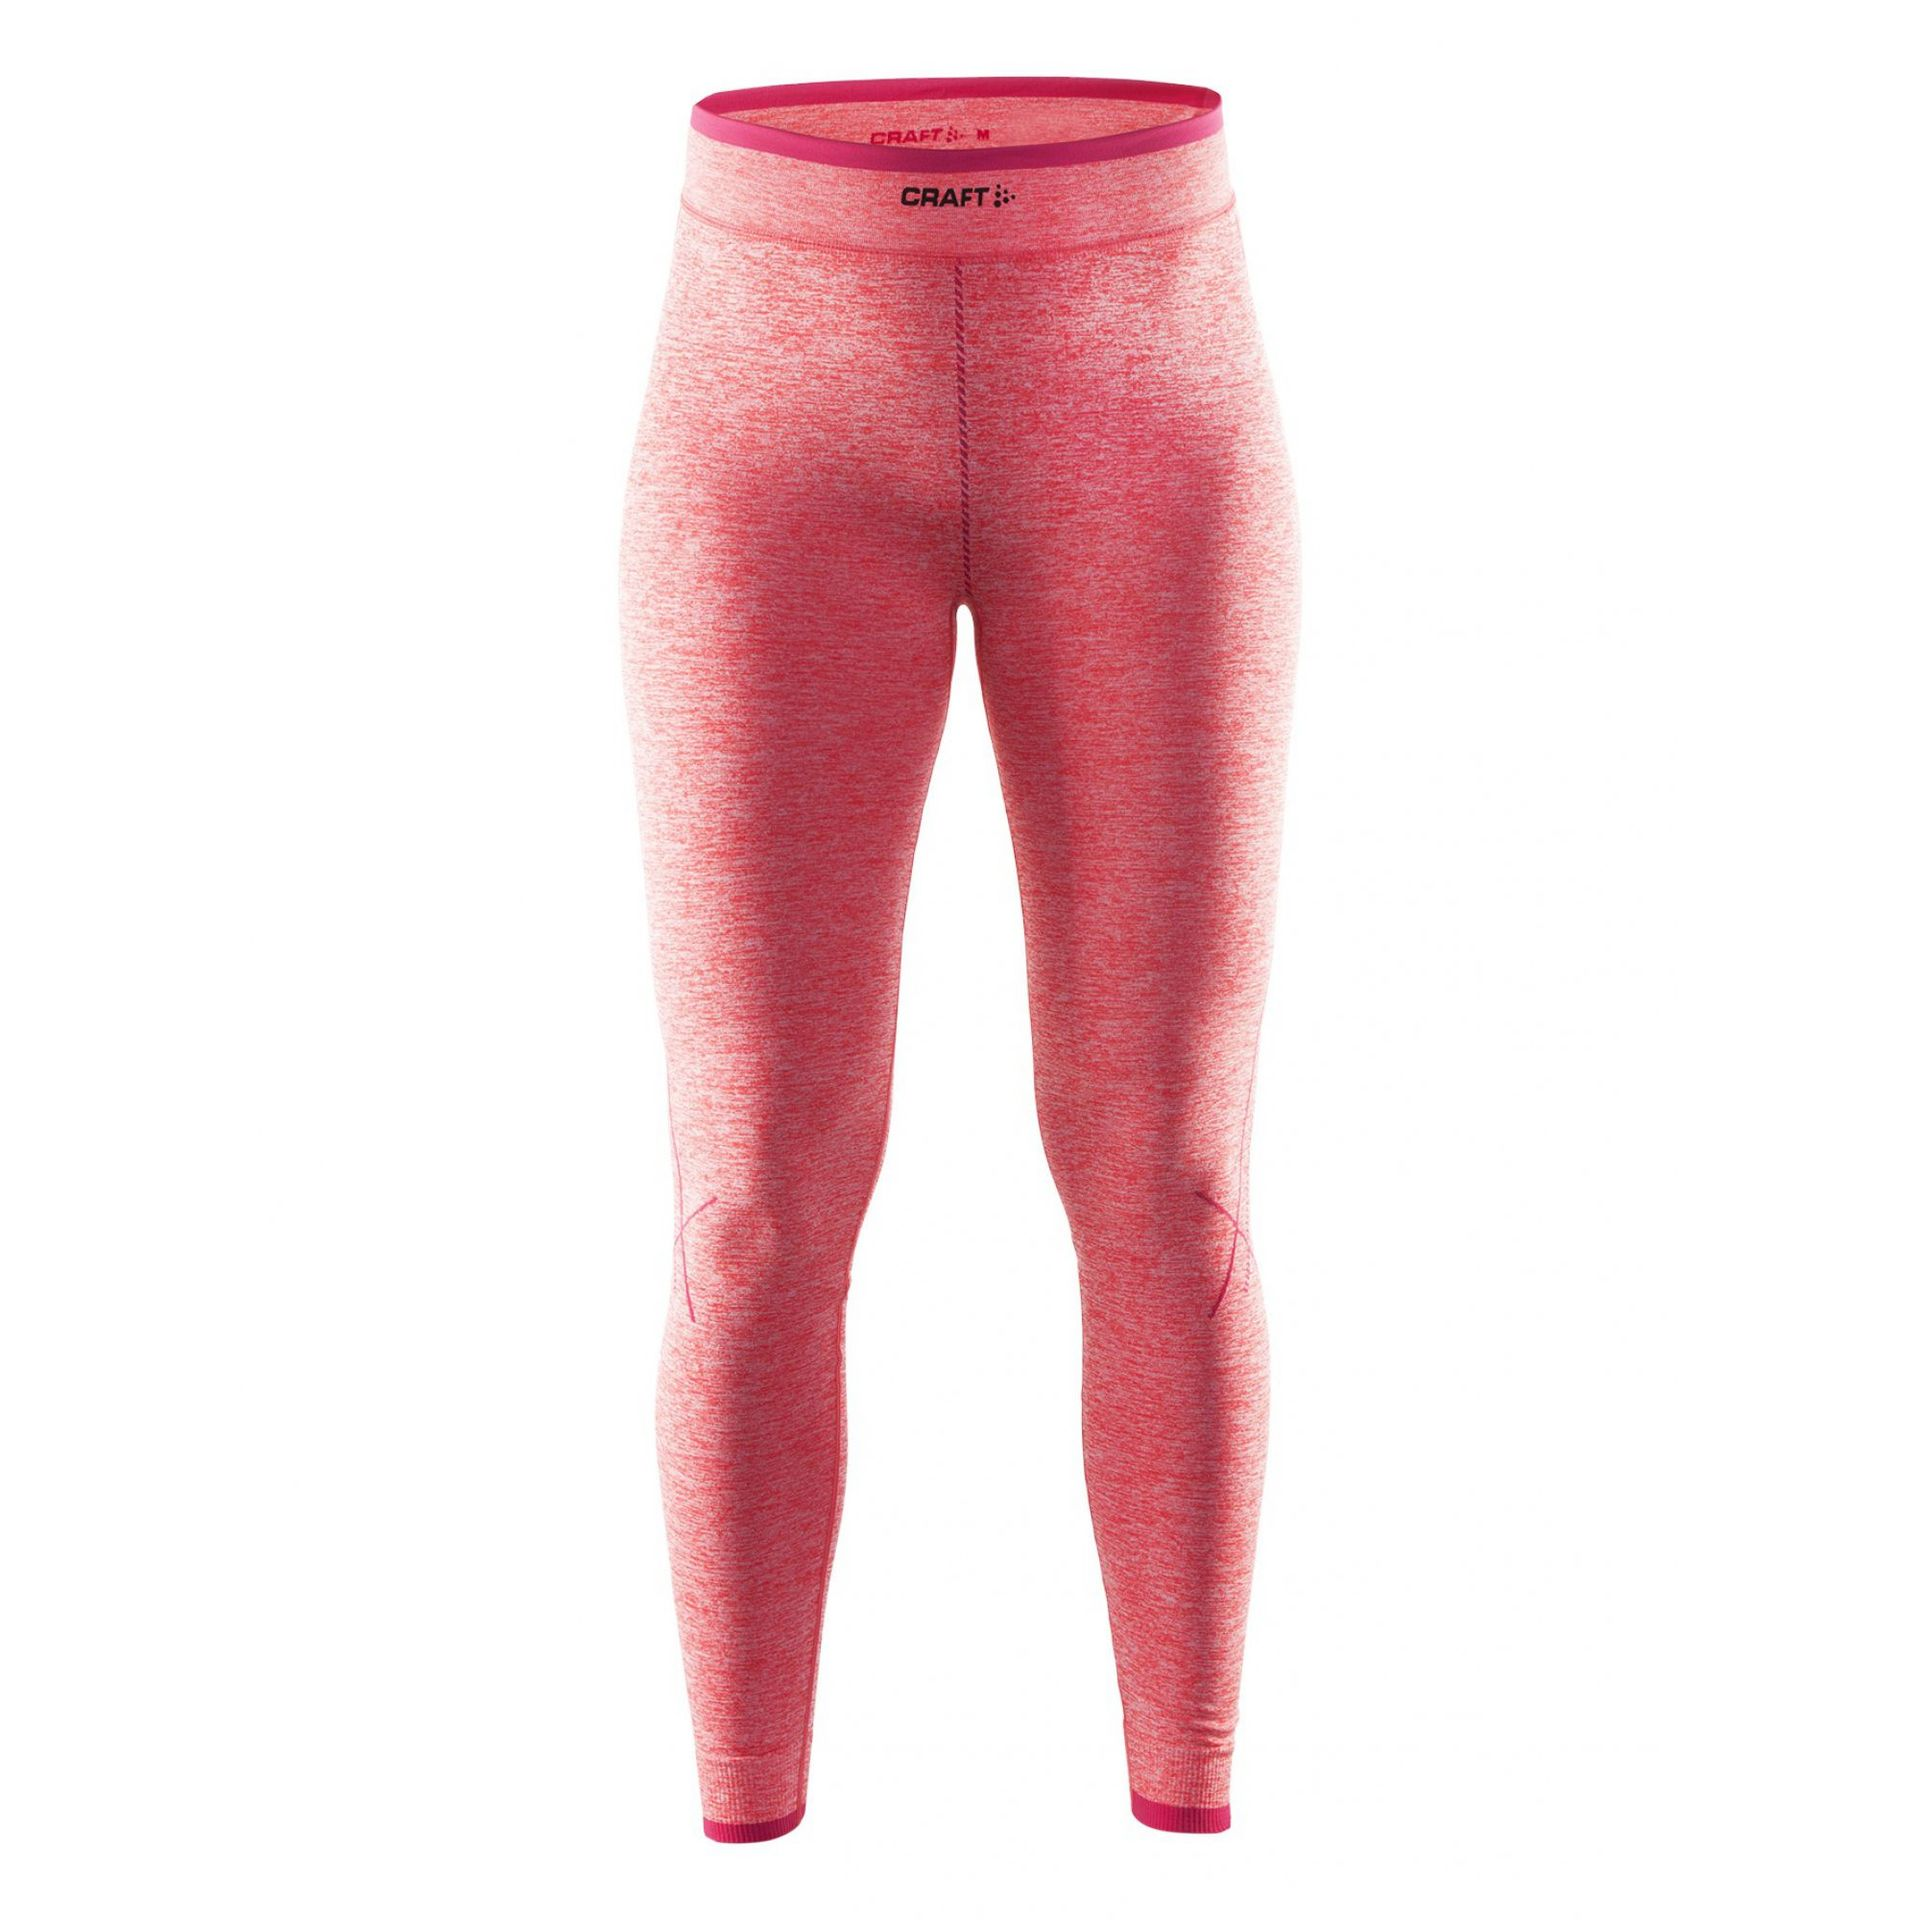 SPODNIE CRAFT ACTIVE COMFORT PANTS 410 1